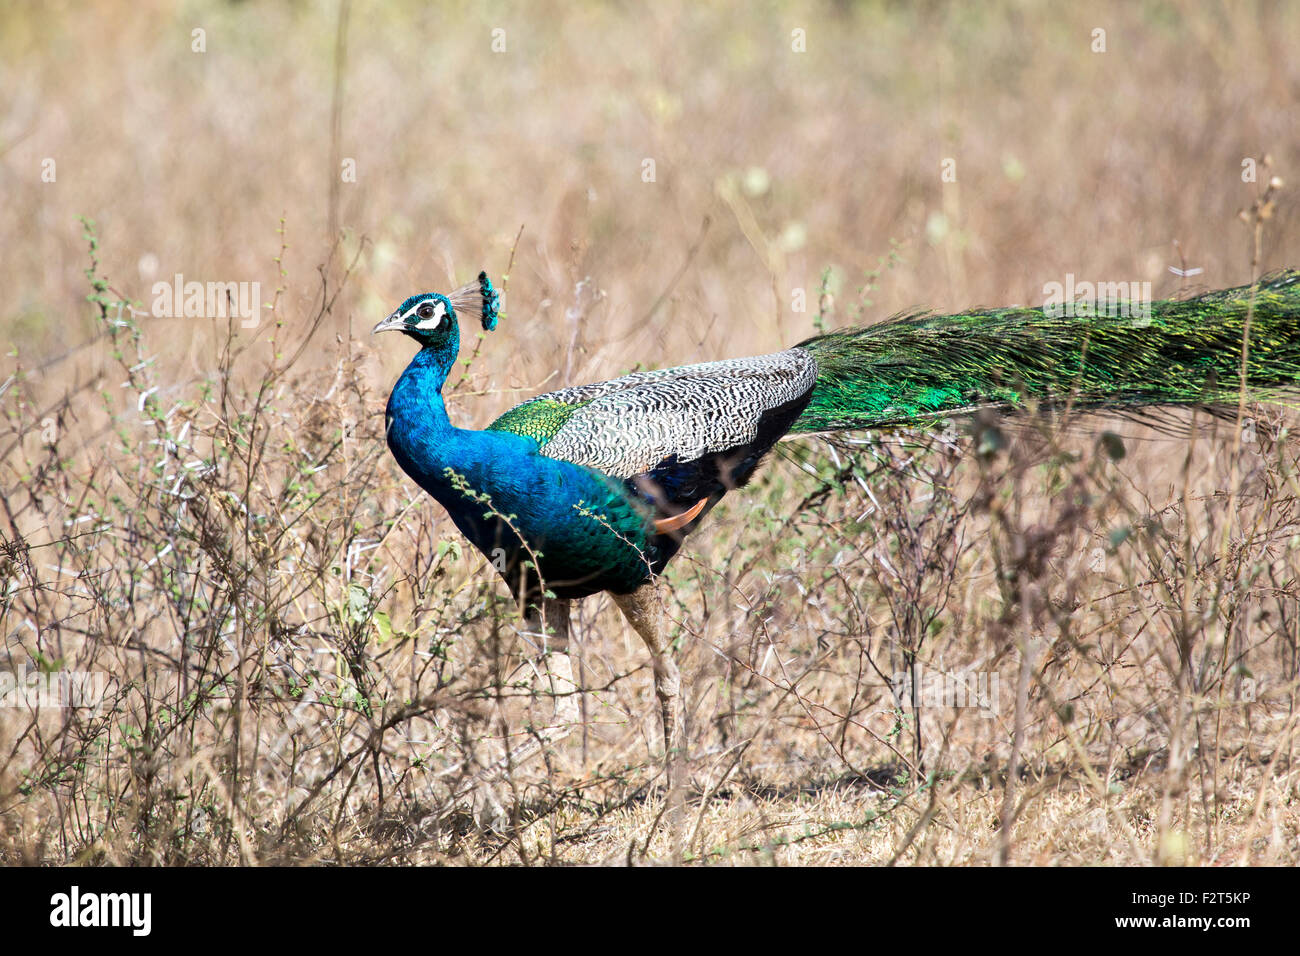 Indian peafowl or blue peafowl (Pavo cristatus) - Stock Image